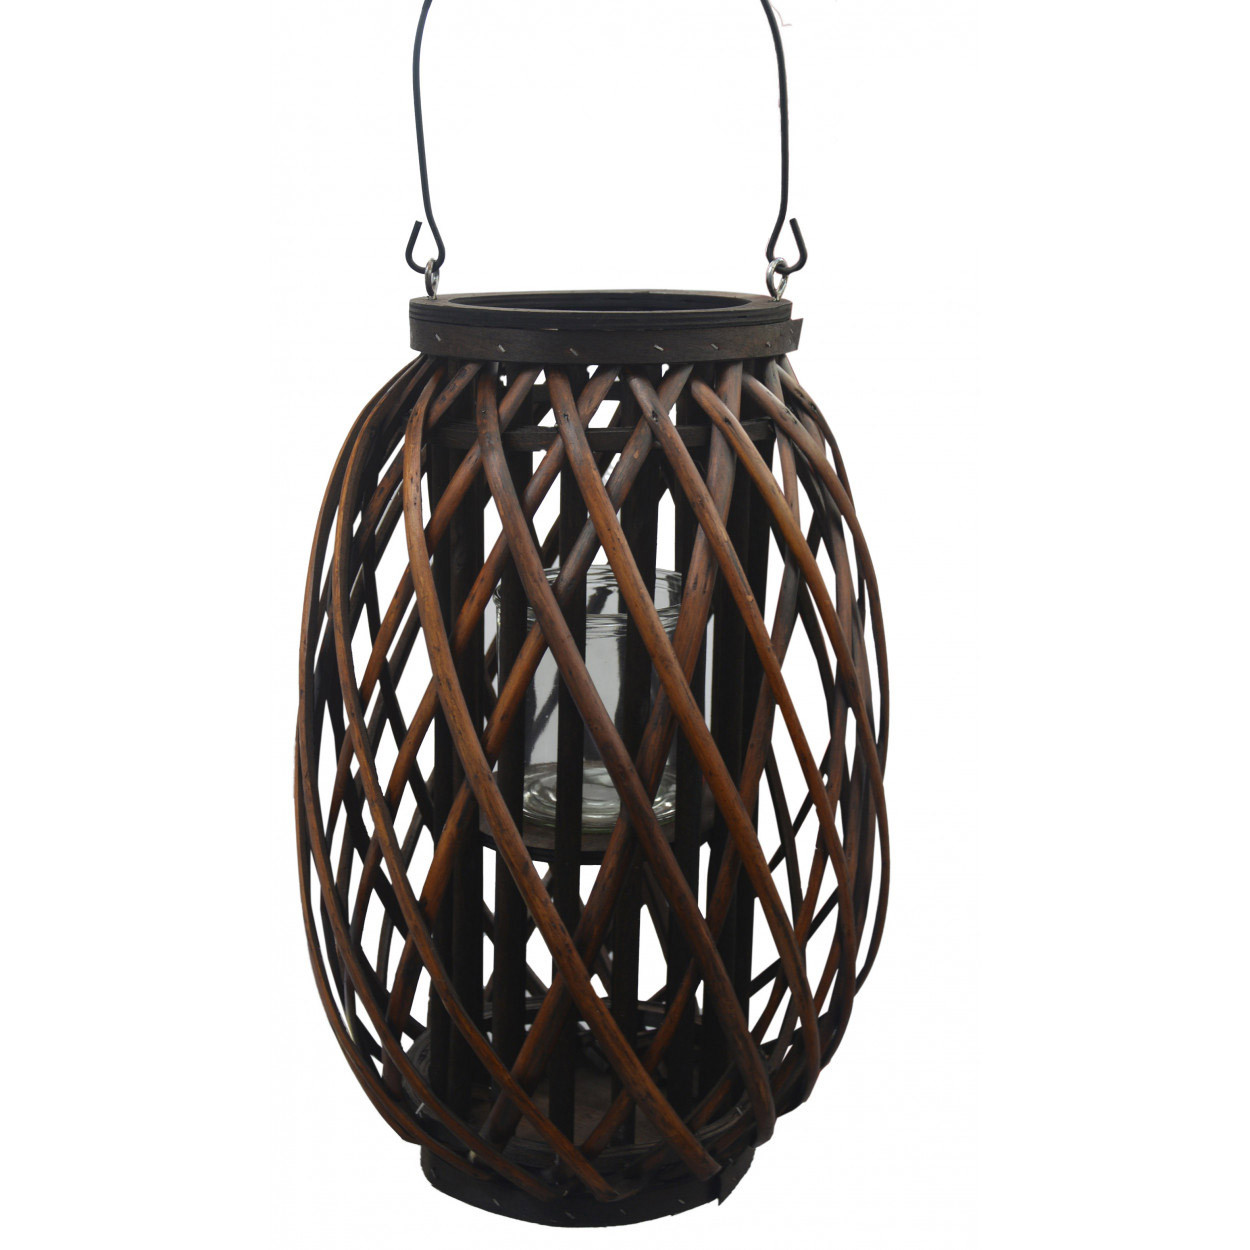 Porta-candles, Decor, Wicker, Decor Hanging Candles. Large holder candle 27x27x40 cm